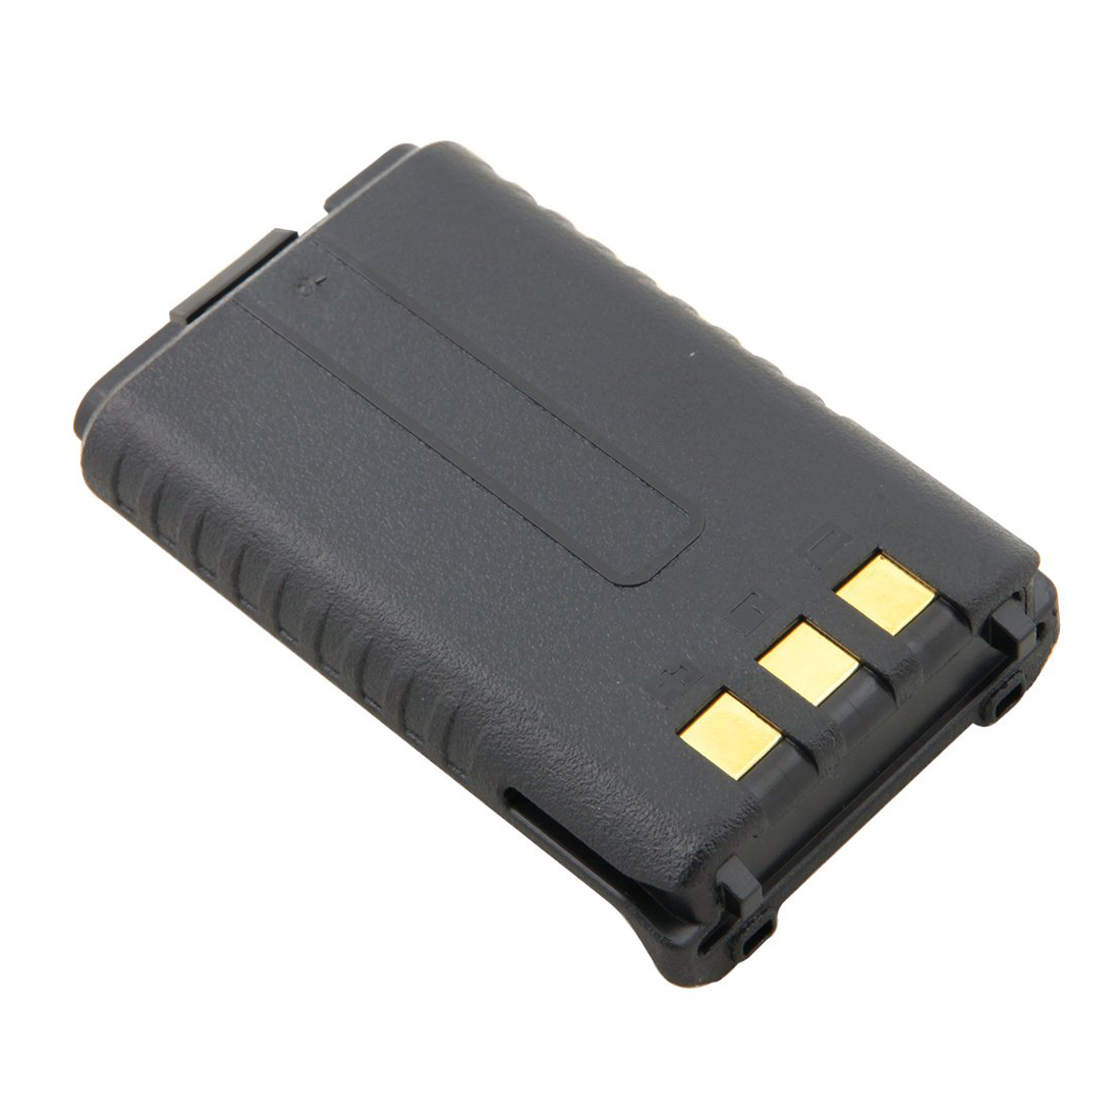 MOOL Baofeng lithium-ion battery replacement battery for Baofeng and POFUNG